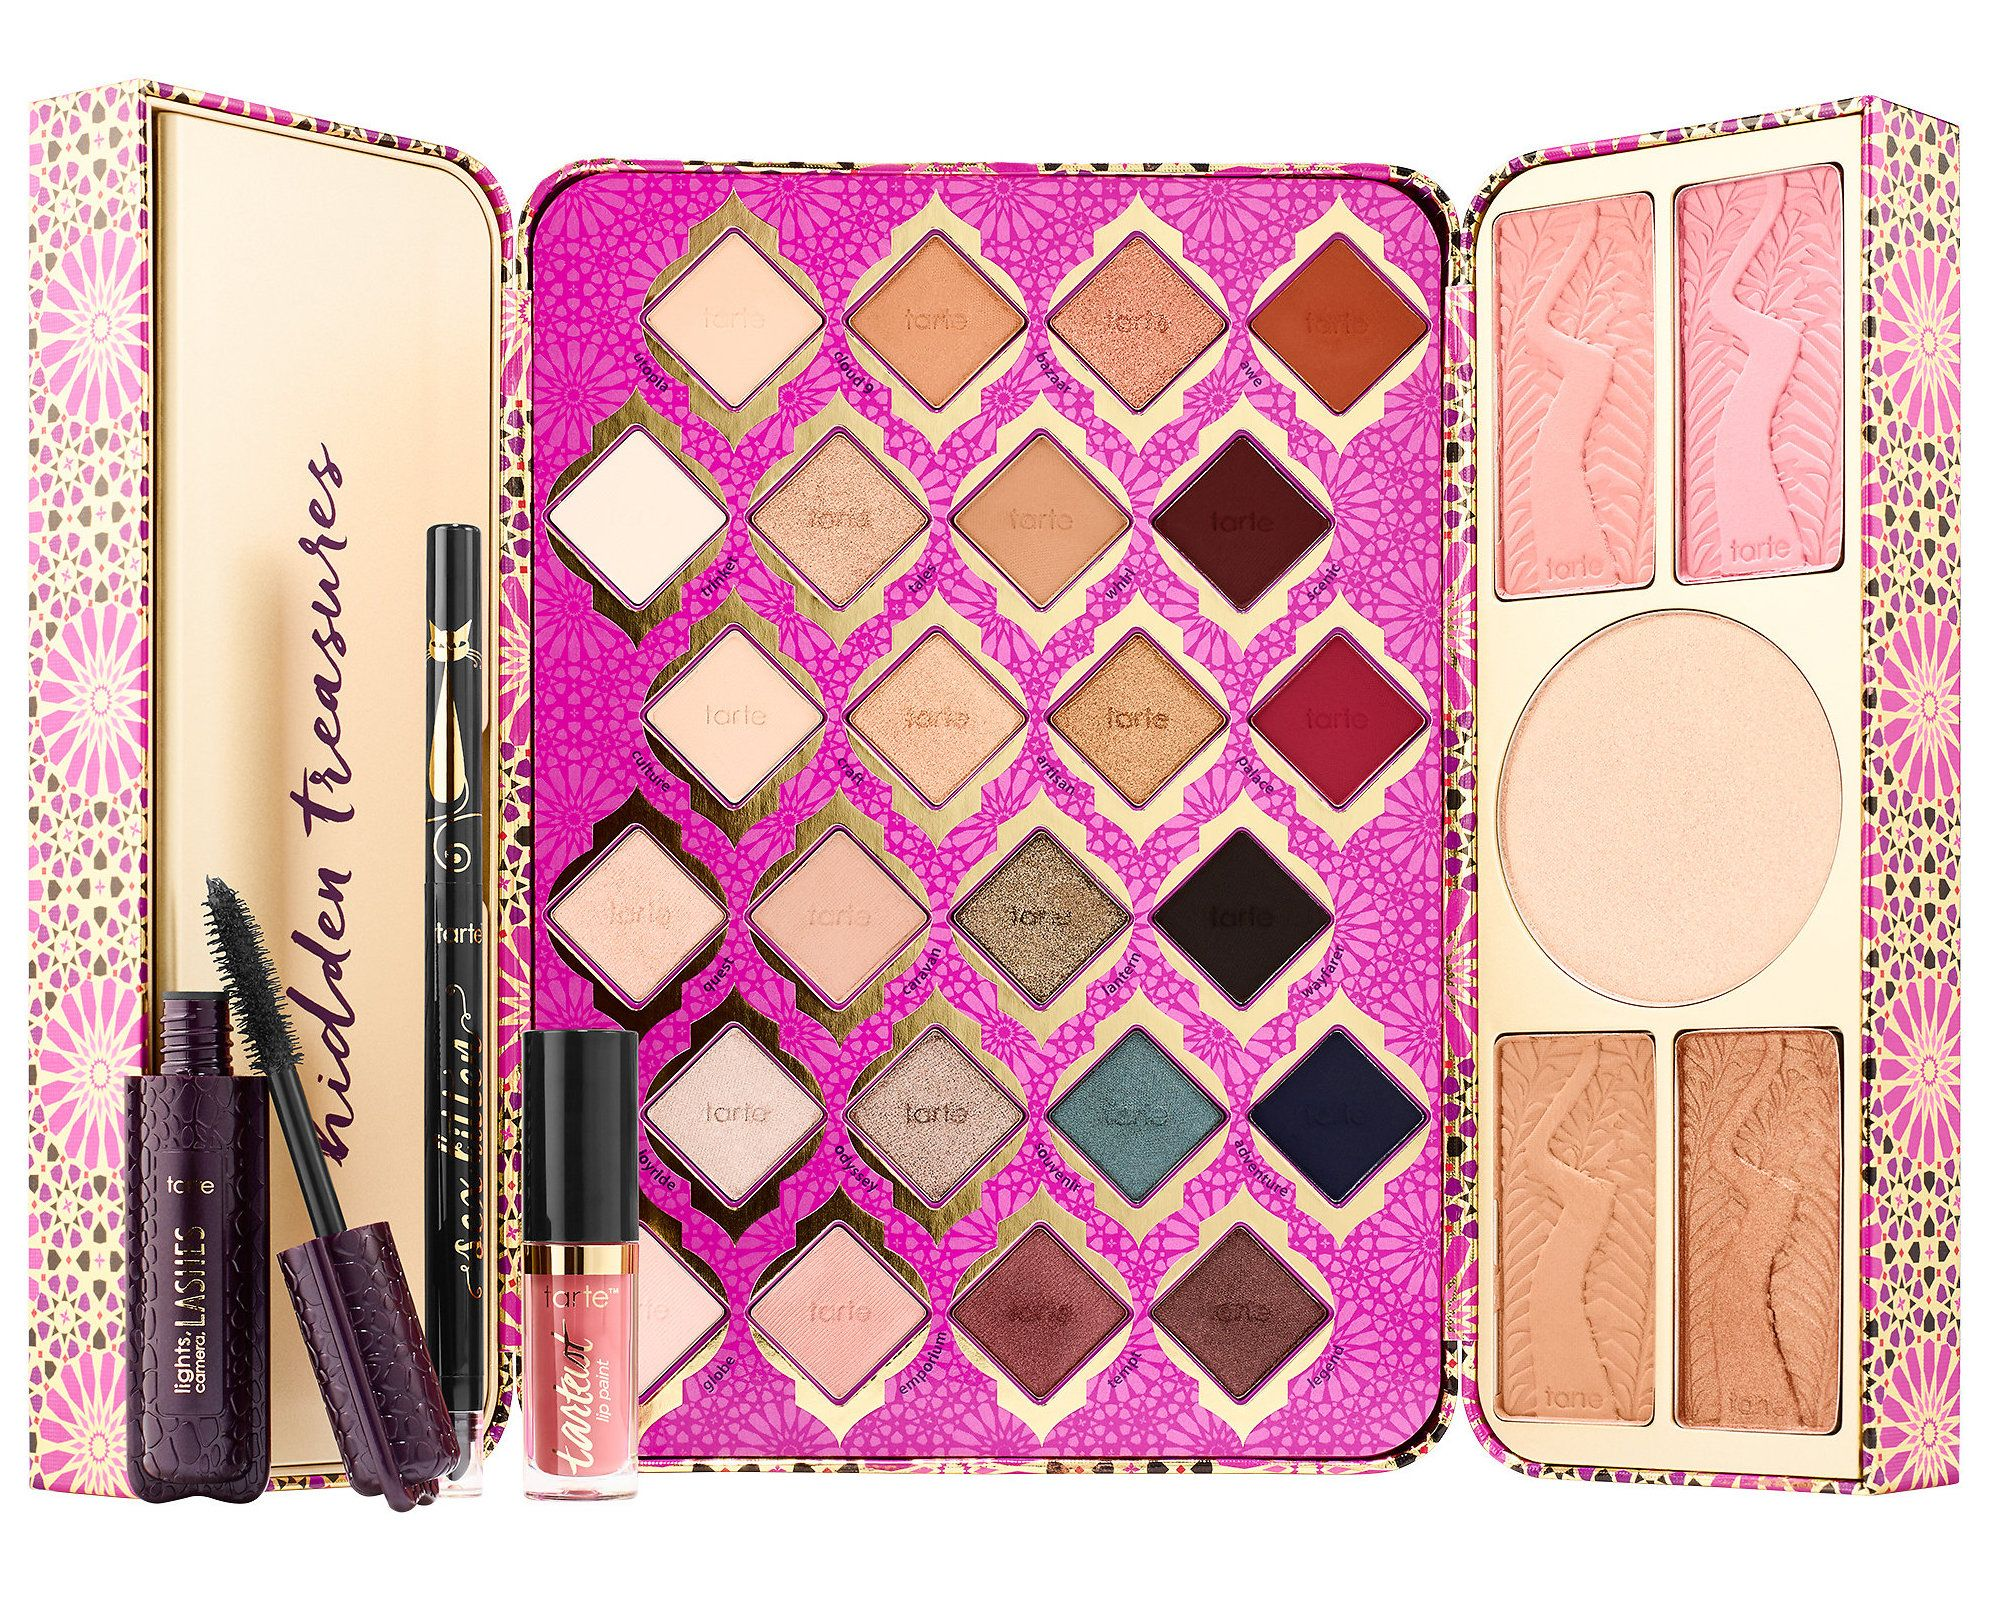 Tarte Treasure Box